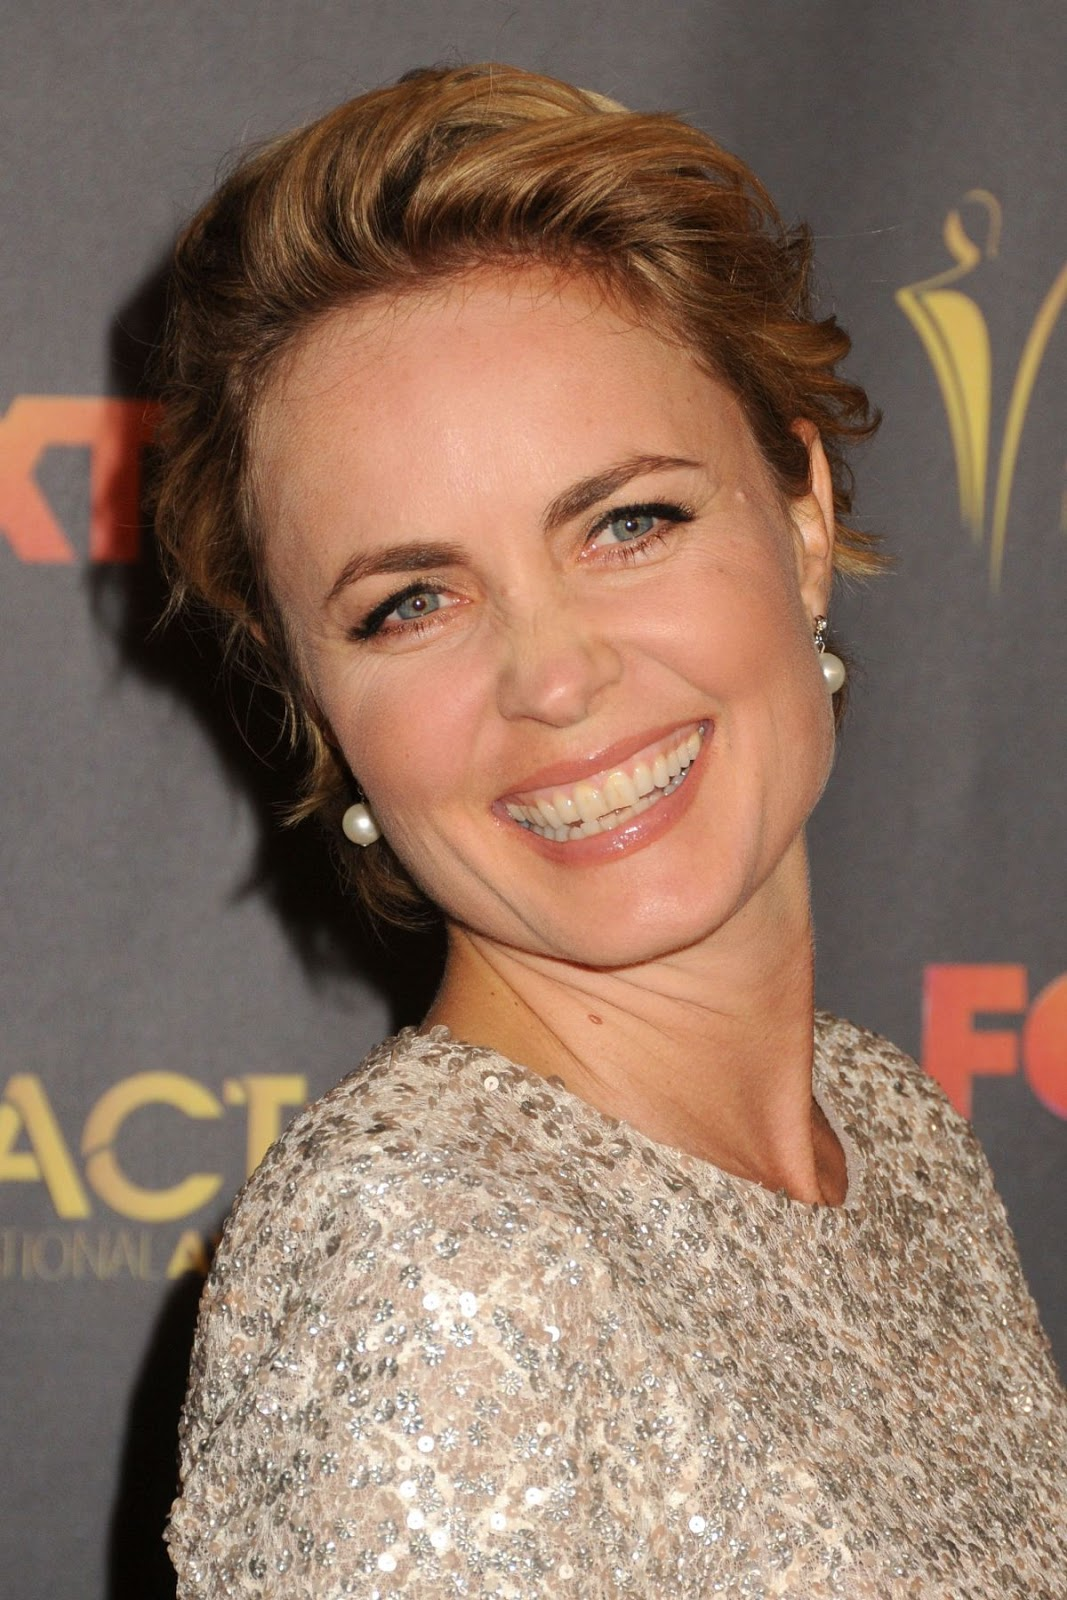 London Has Fallen actress Radha Mitchell at 5th AACTA International Awards